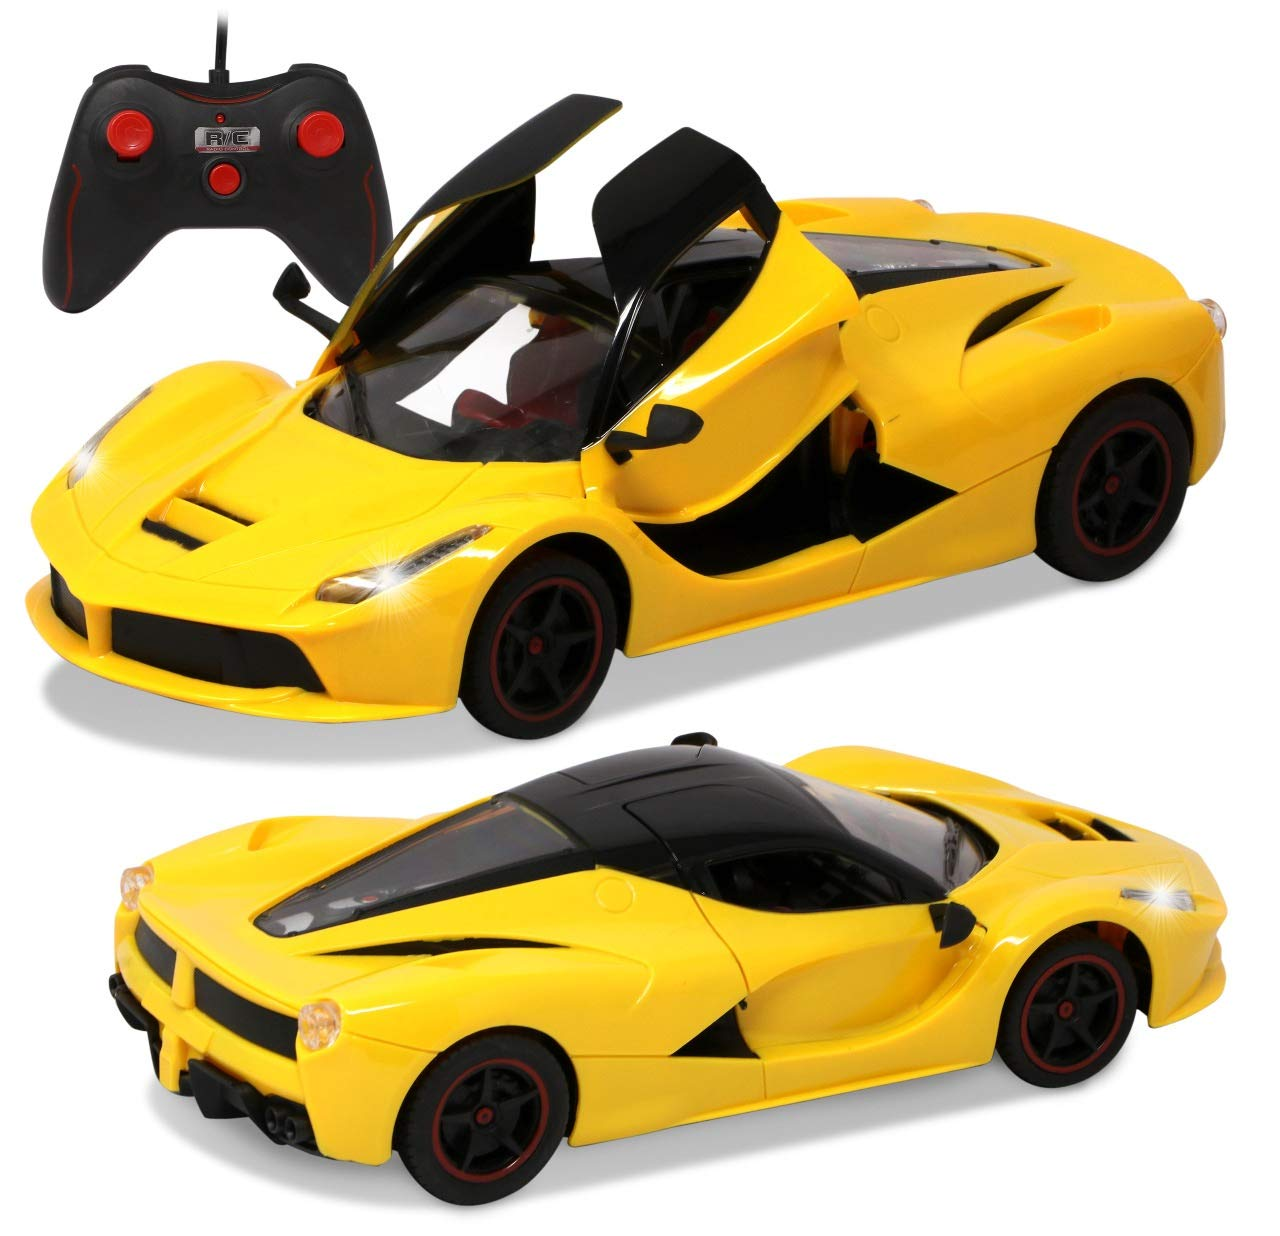 Buy Zest 4 Toyz Remote Controlled Ferrari Like Model Sports Car With Openable Doors Yellow Online At Low Prices In India Amazon In